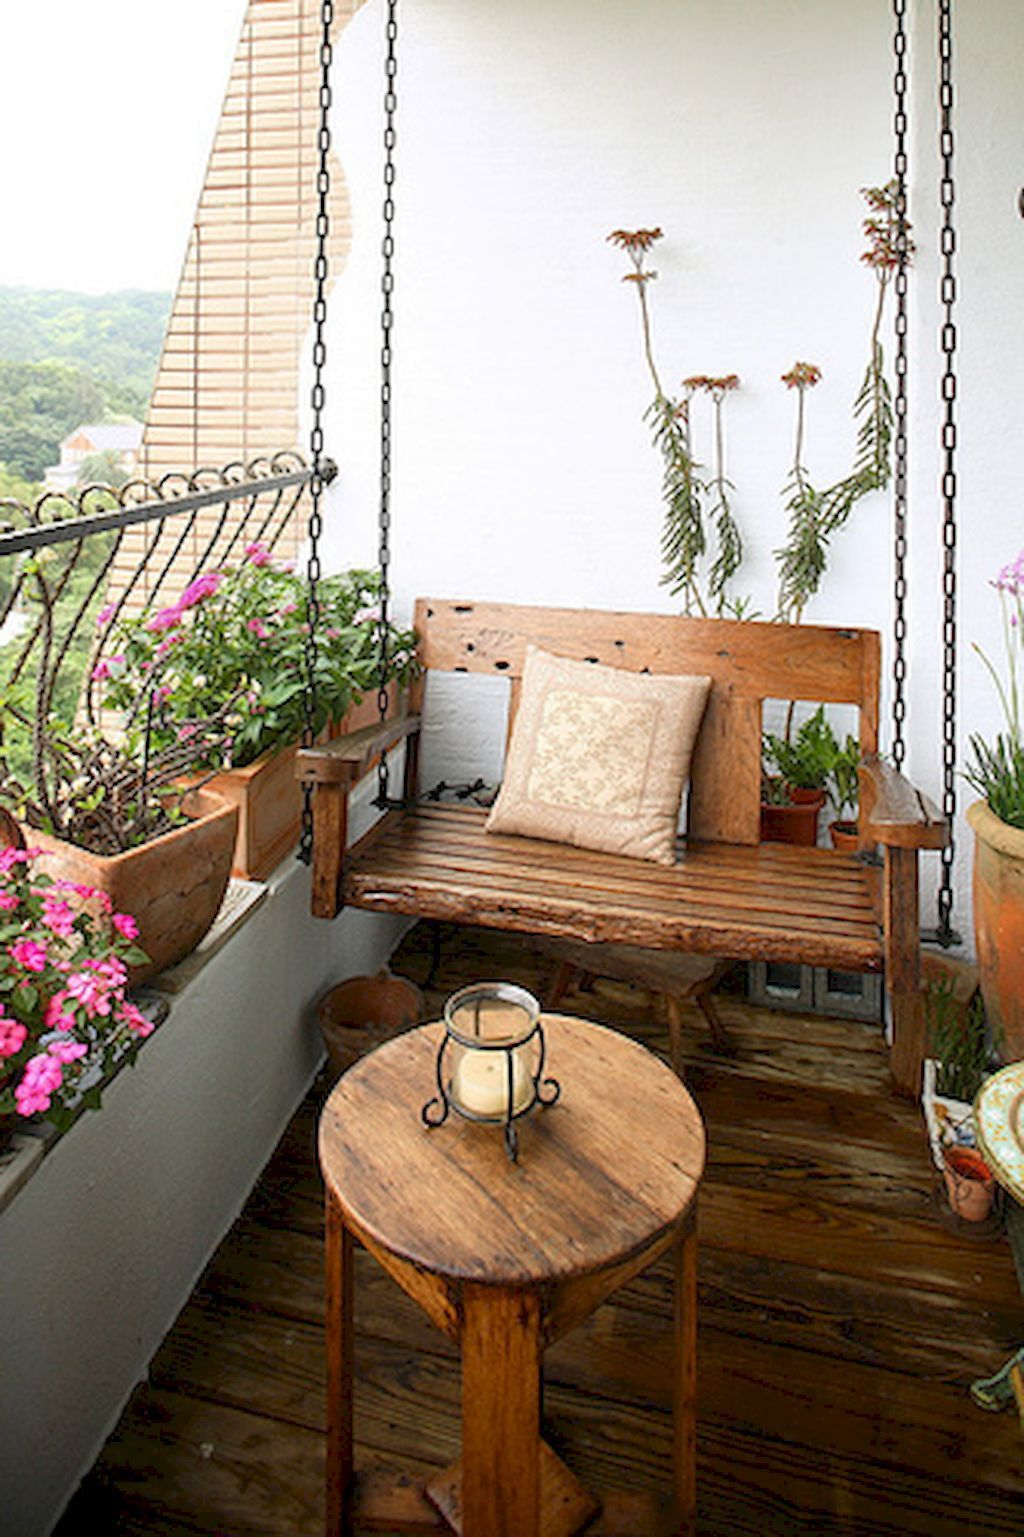 Small Apartment Balcony Furniture And Decor Ideas 6 Being Trendy